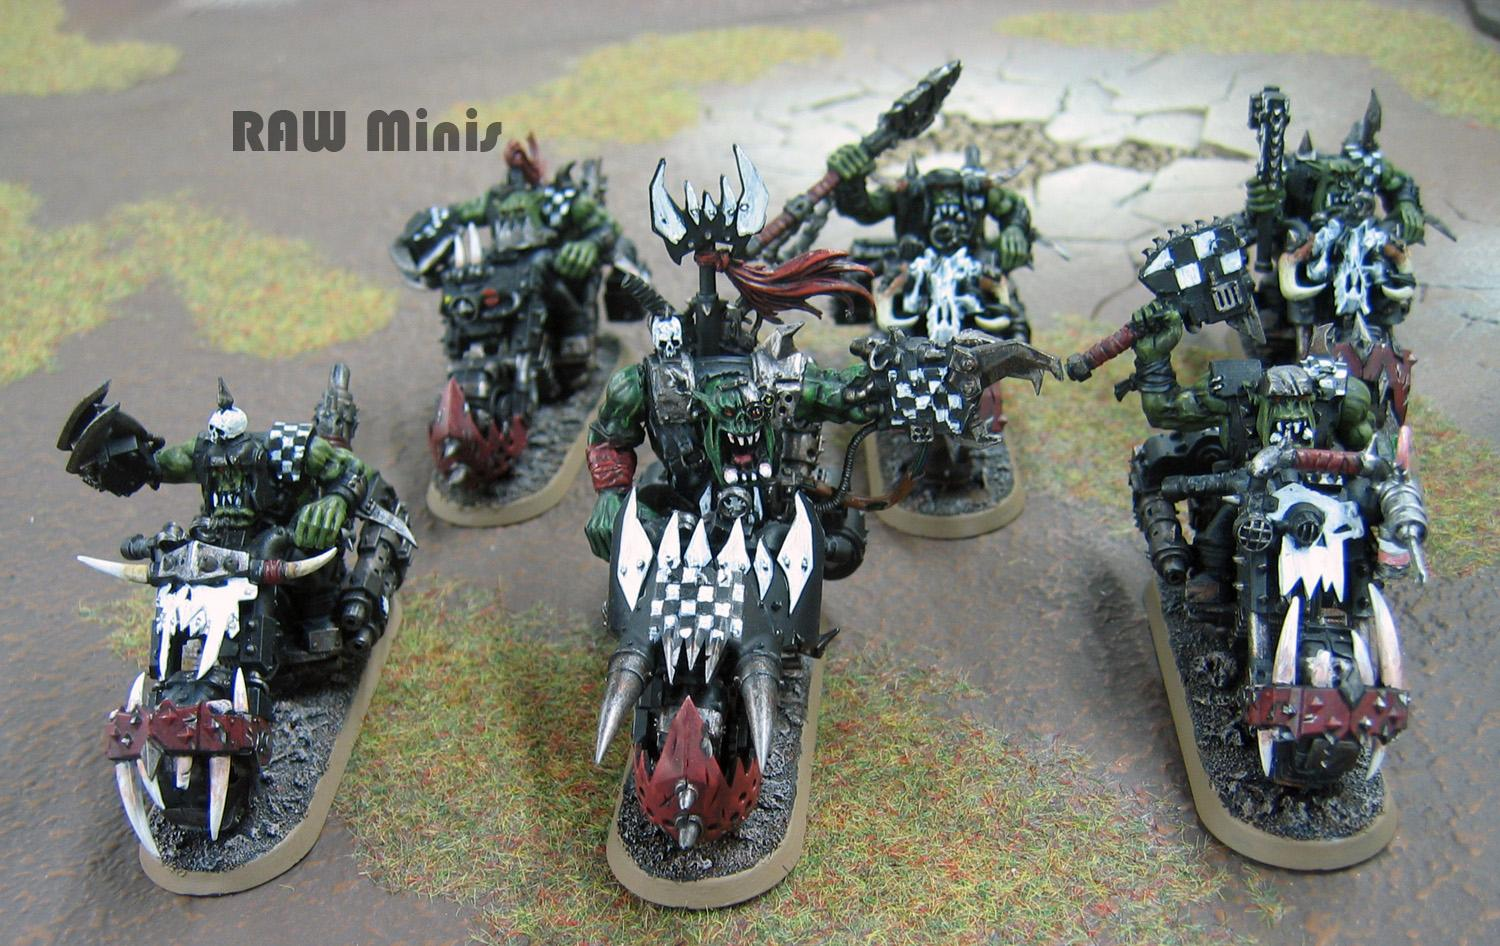 Bike, Boy, Conversion, Mob, Nob, Orks, Painboy, Painting, Warbike, Warbikers, Warboss, Warhammer 40,000